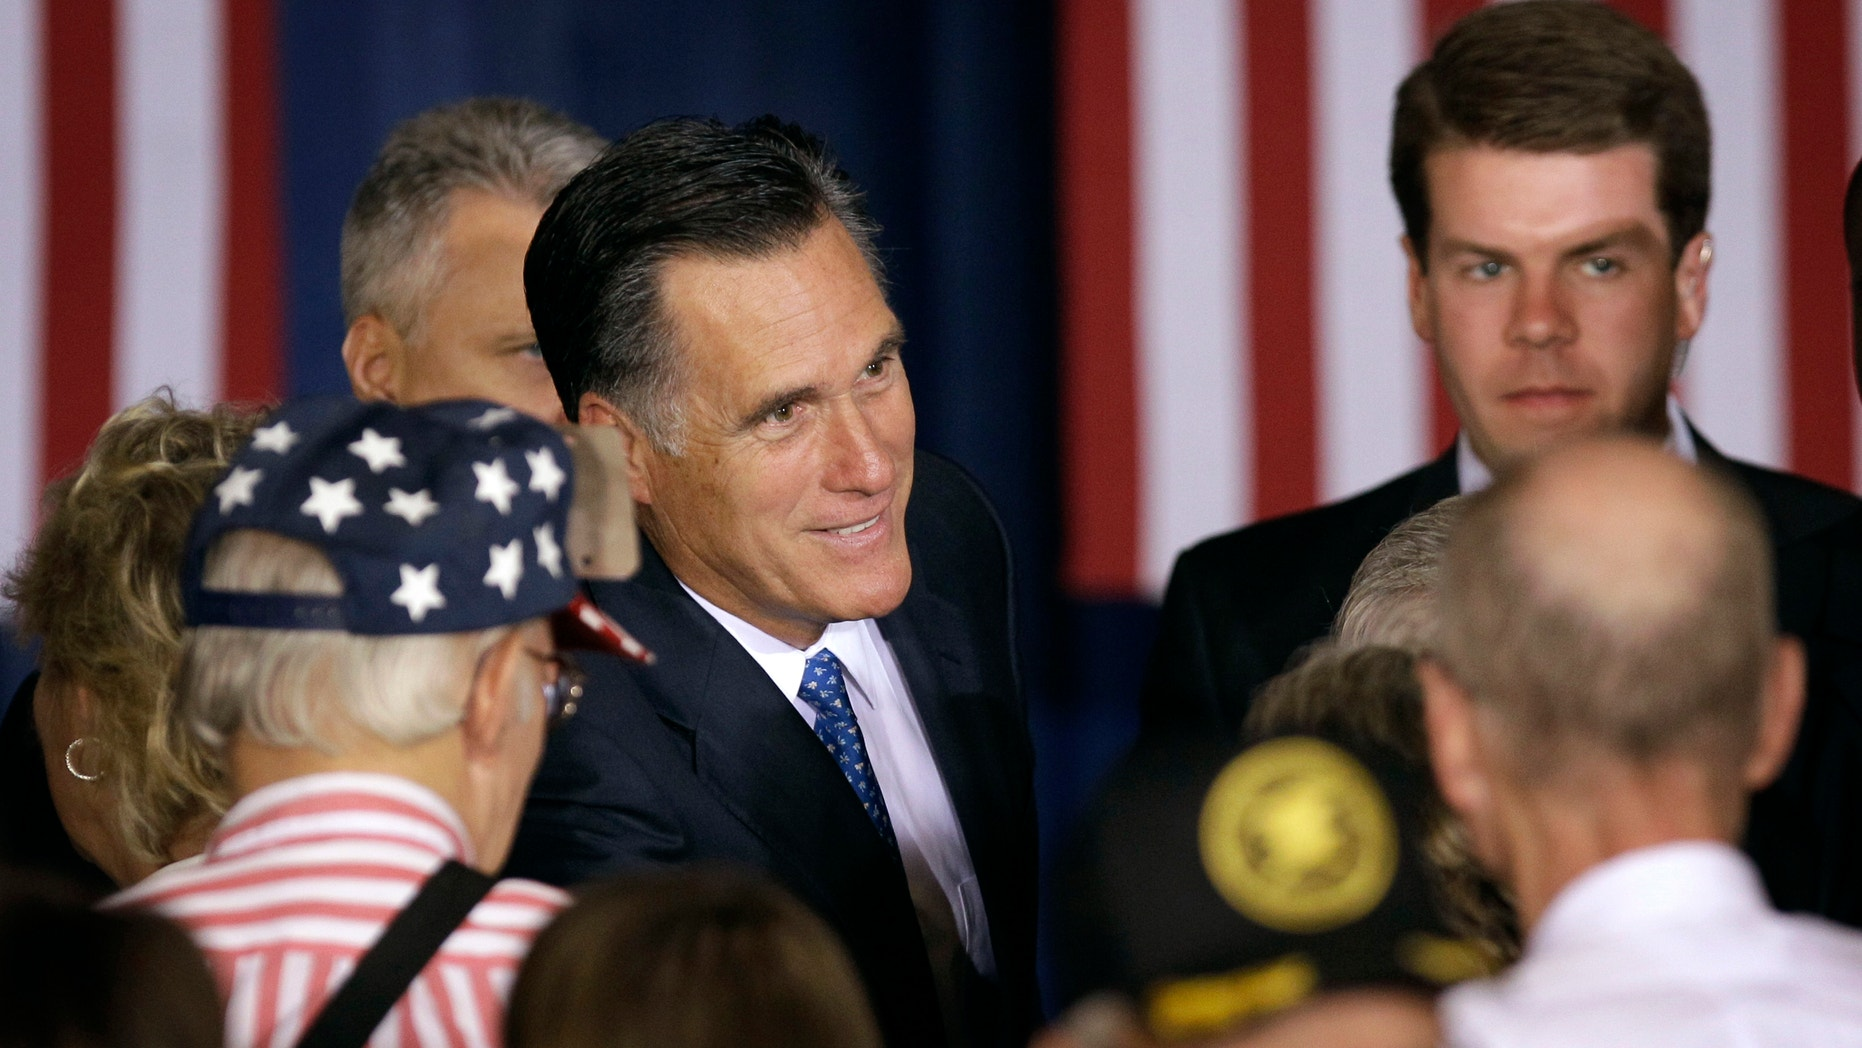 May 15, 2012: Republican presidential candidate, former Massachusetts Gov. Mitt Romney greets supporters after speaking at a campaign stop.